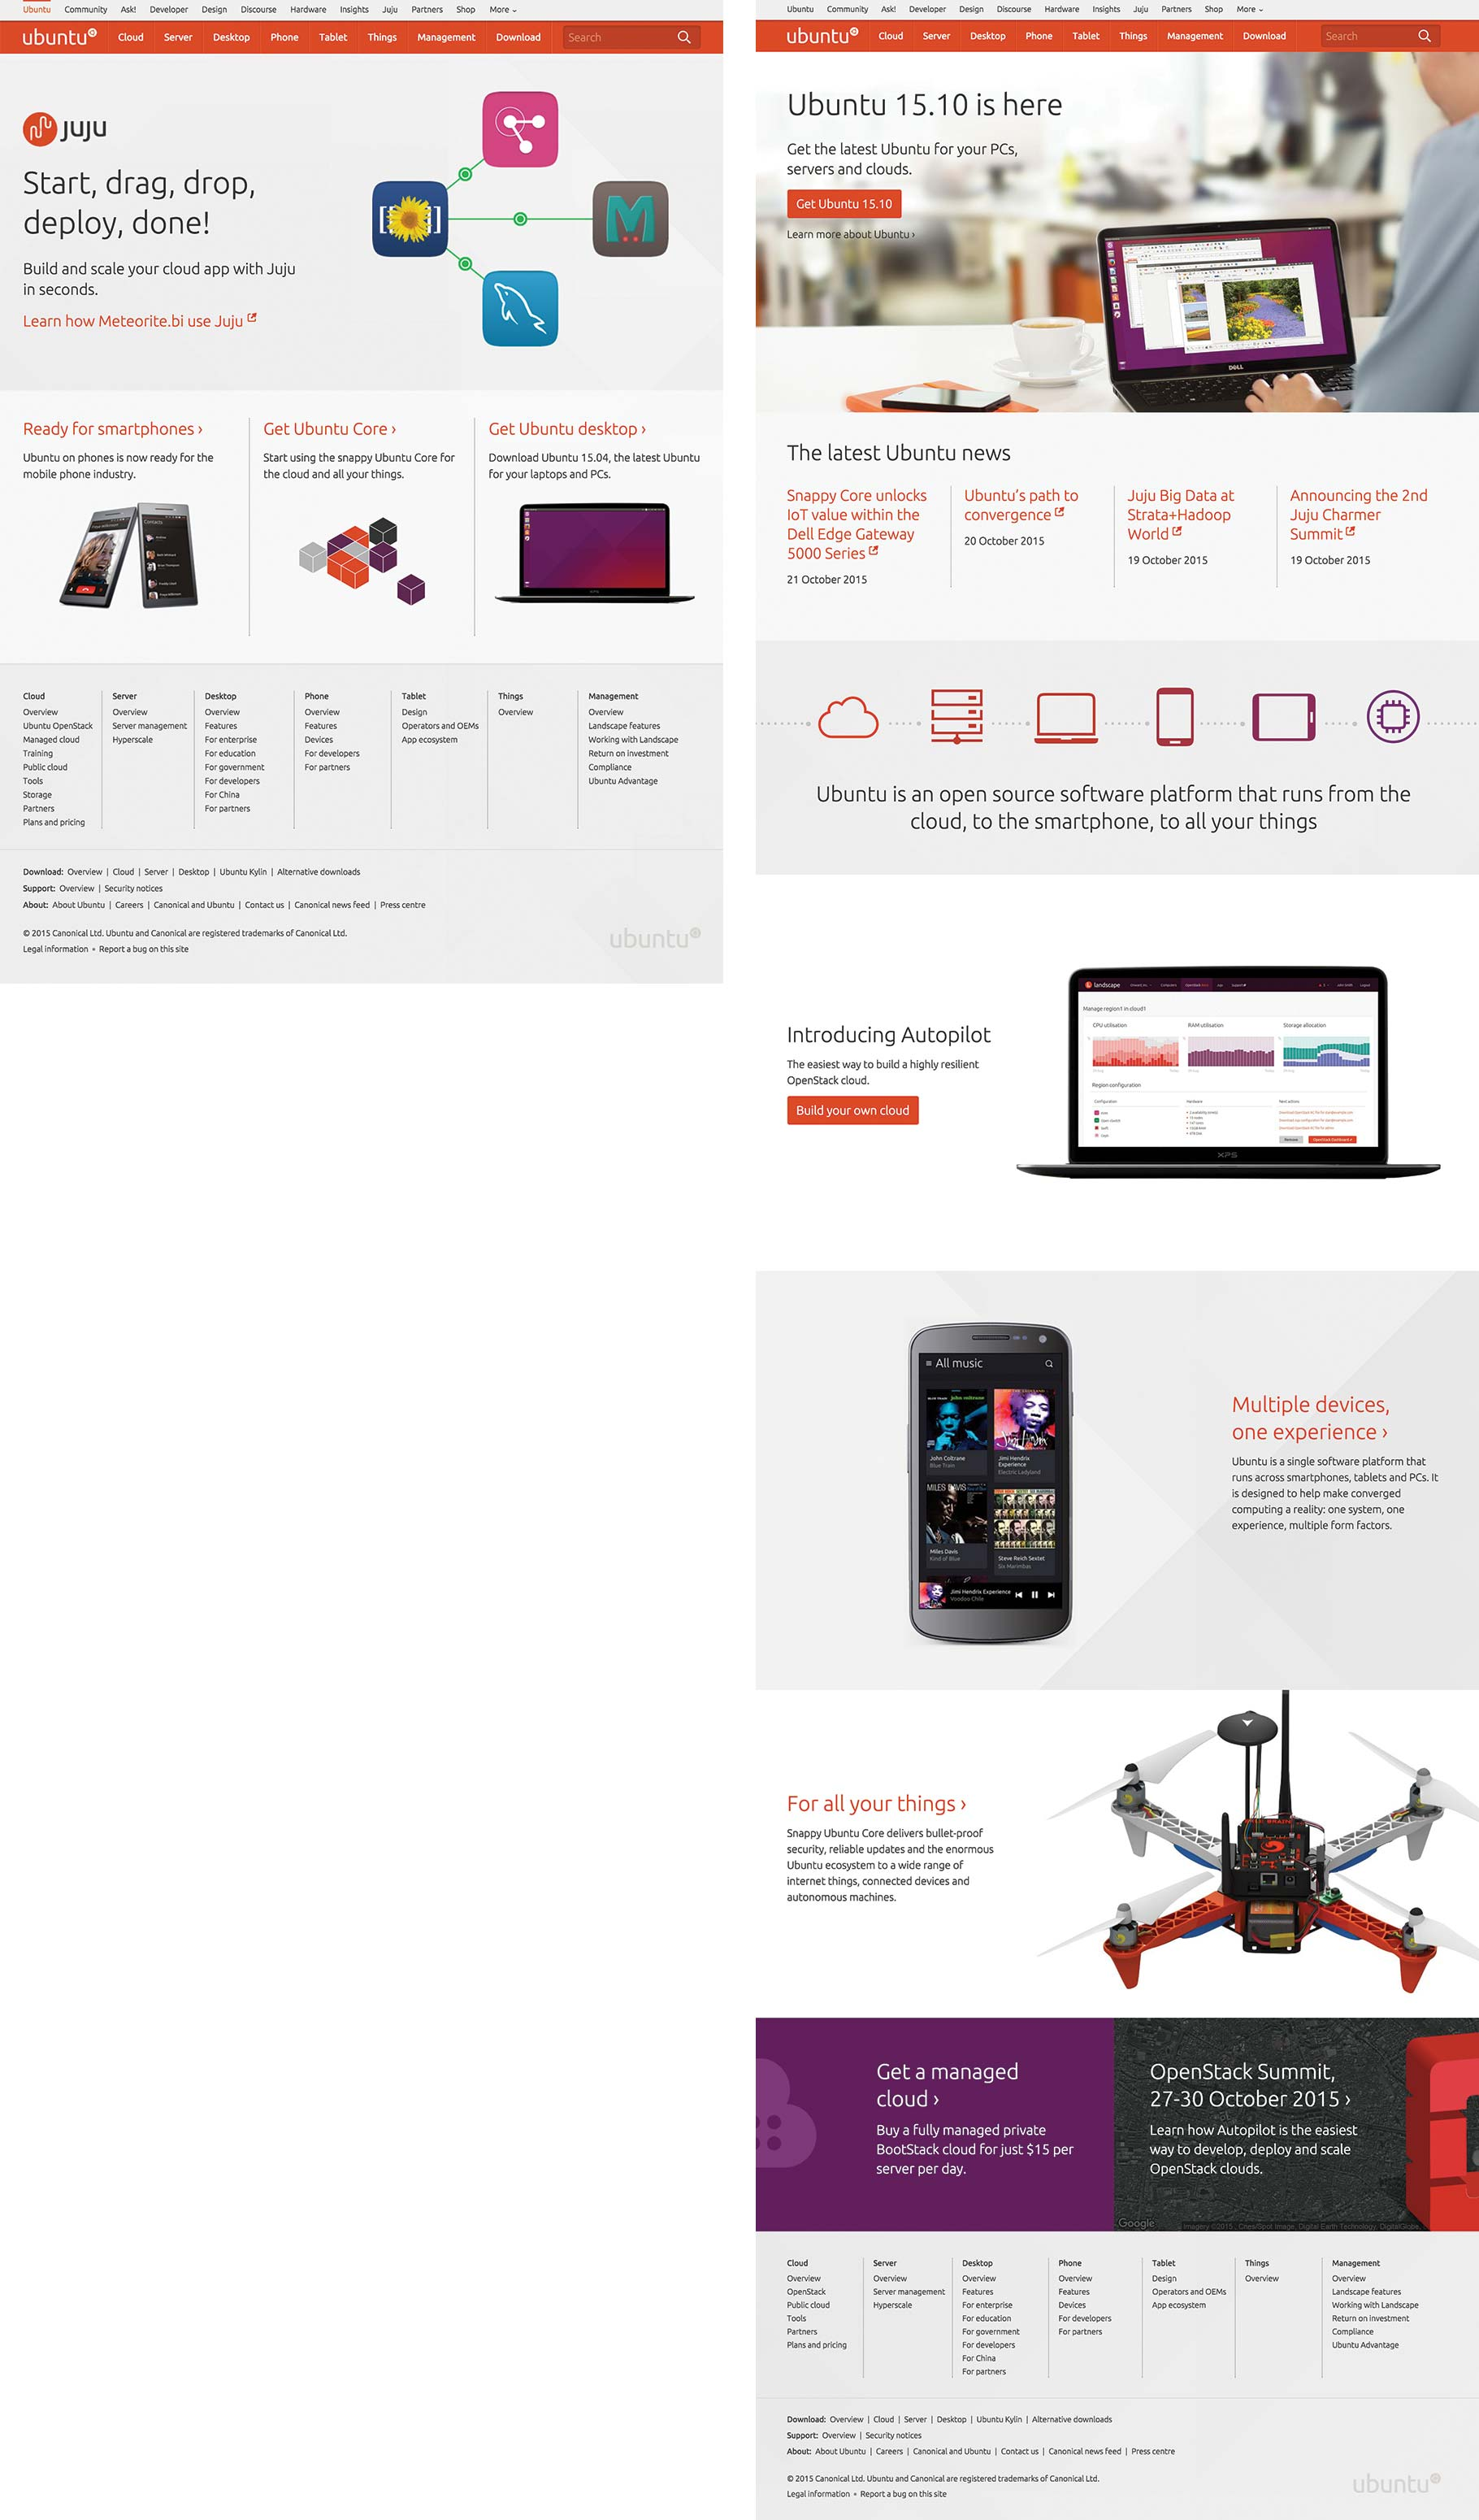 ubuntu.com homepage before and after release